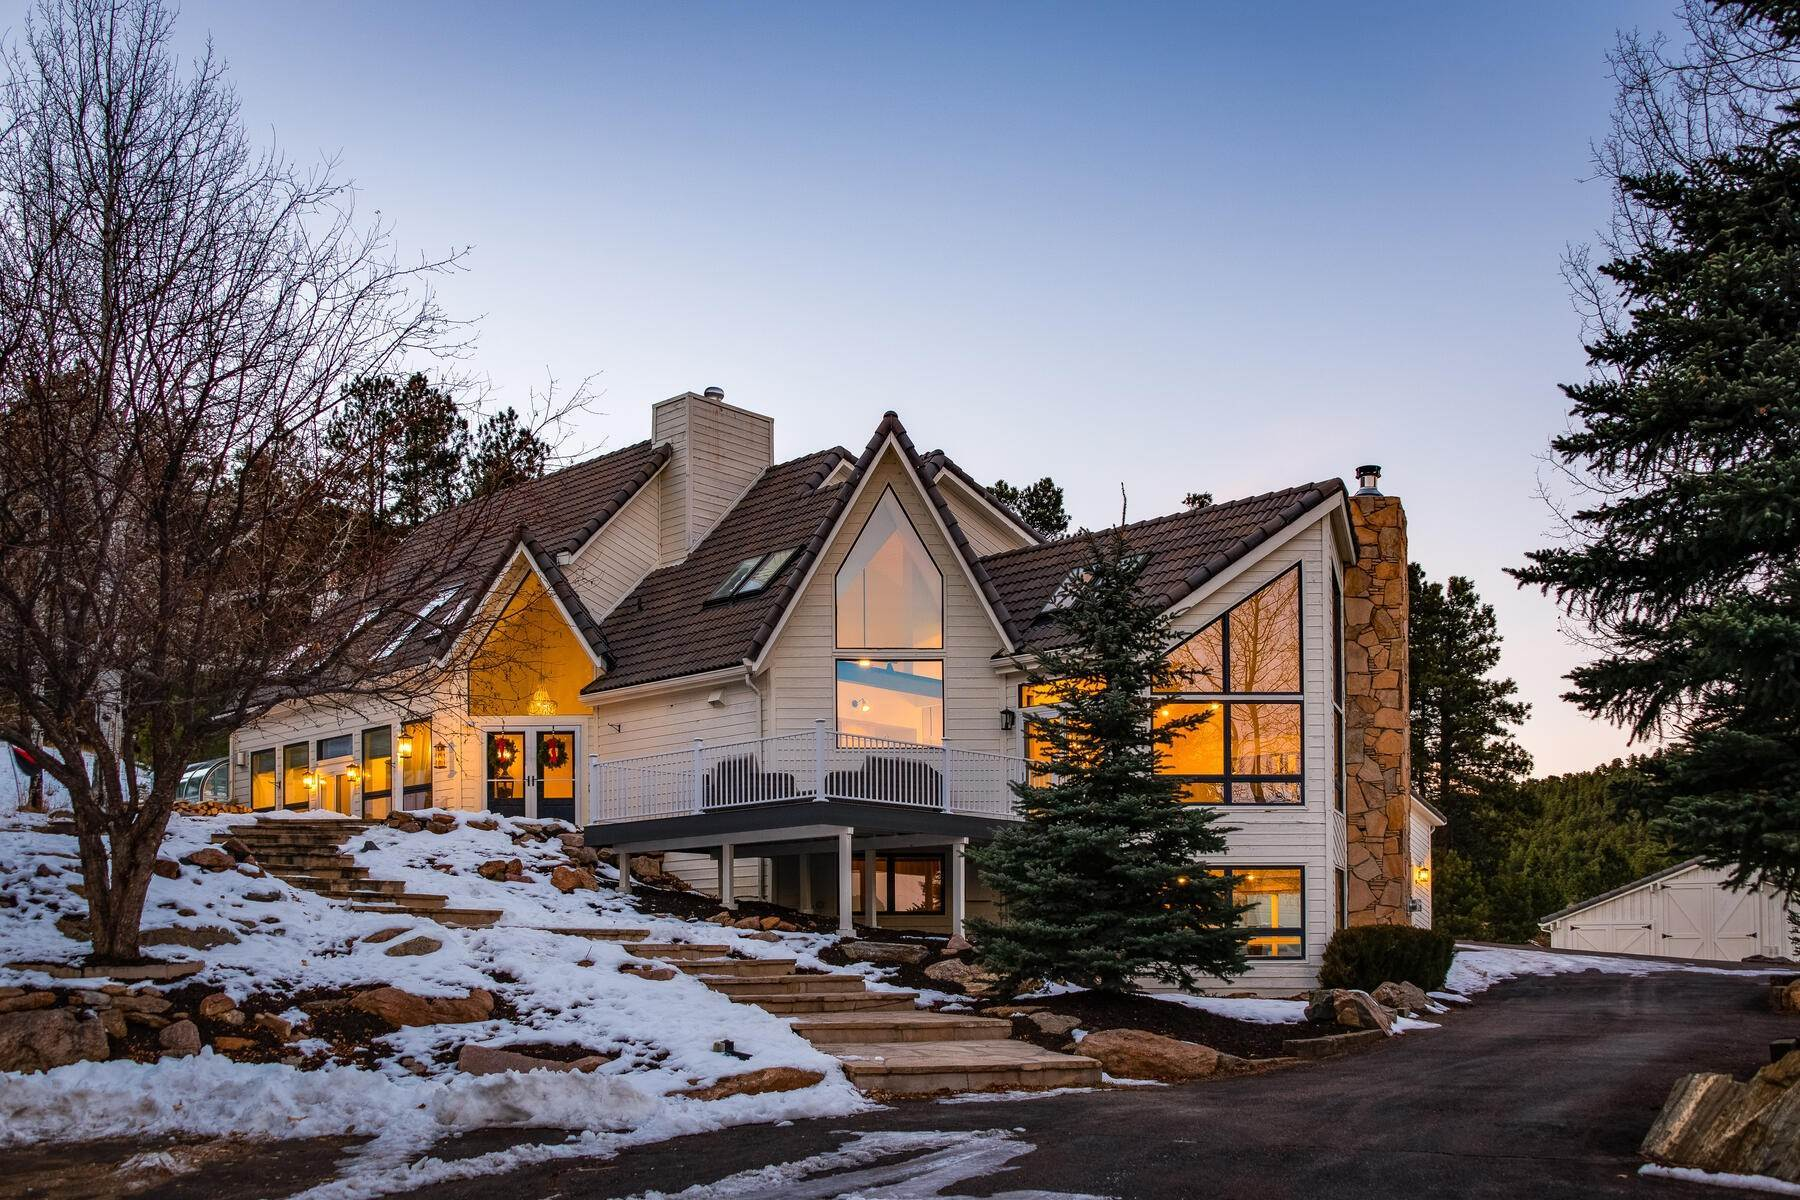 Single Family Homes for Active at Where Art and Design Live in Harmony 1791 Kerr Gulch Road Evergreen, Colorado 80439 United States